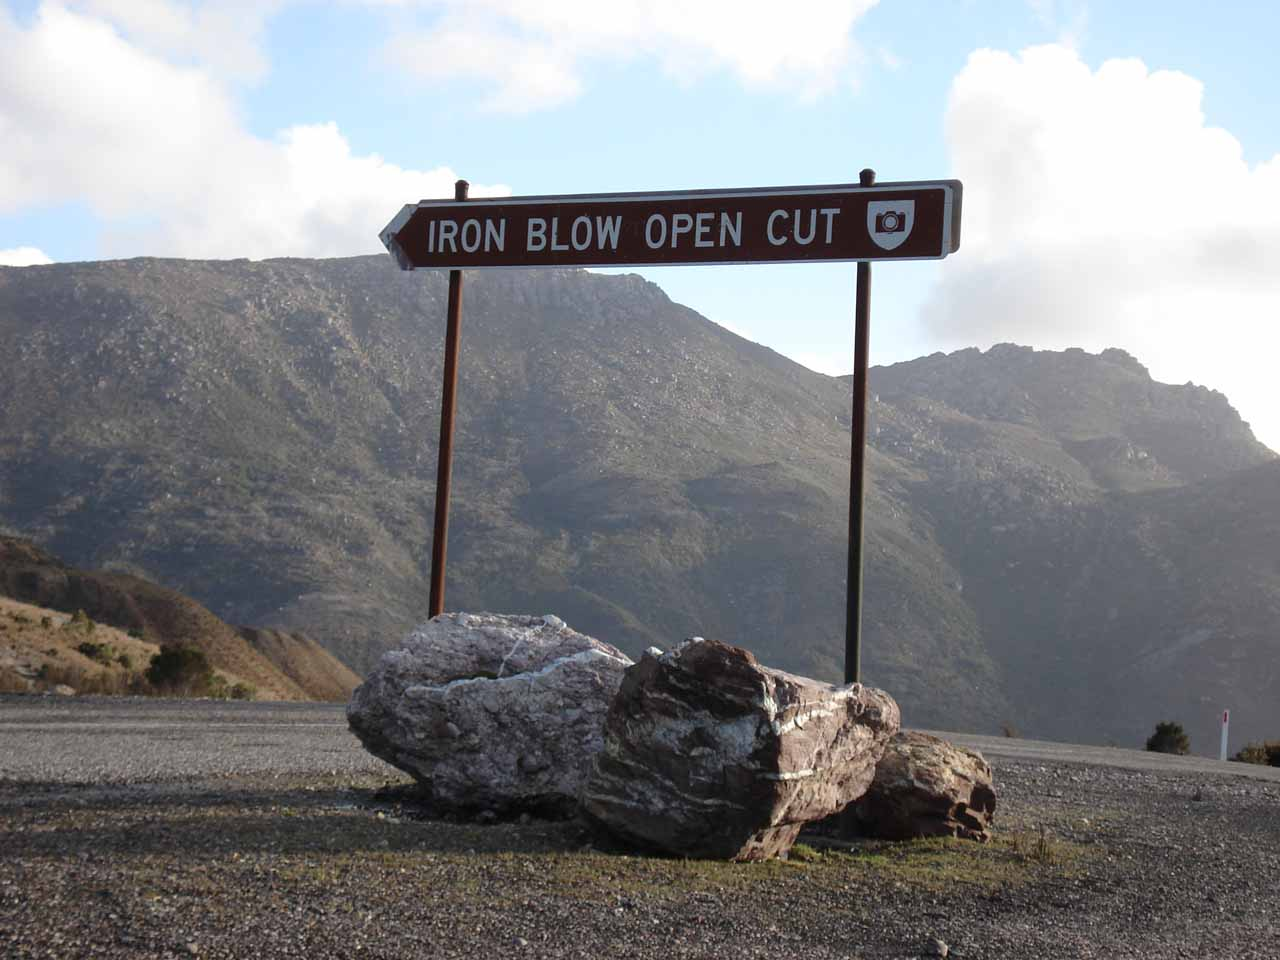 This was the Iron Blow Open Cut sign about 1km further up the mountain from where we saw Horsetail Falls